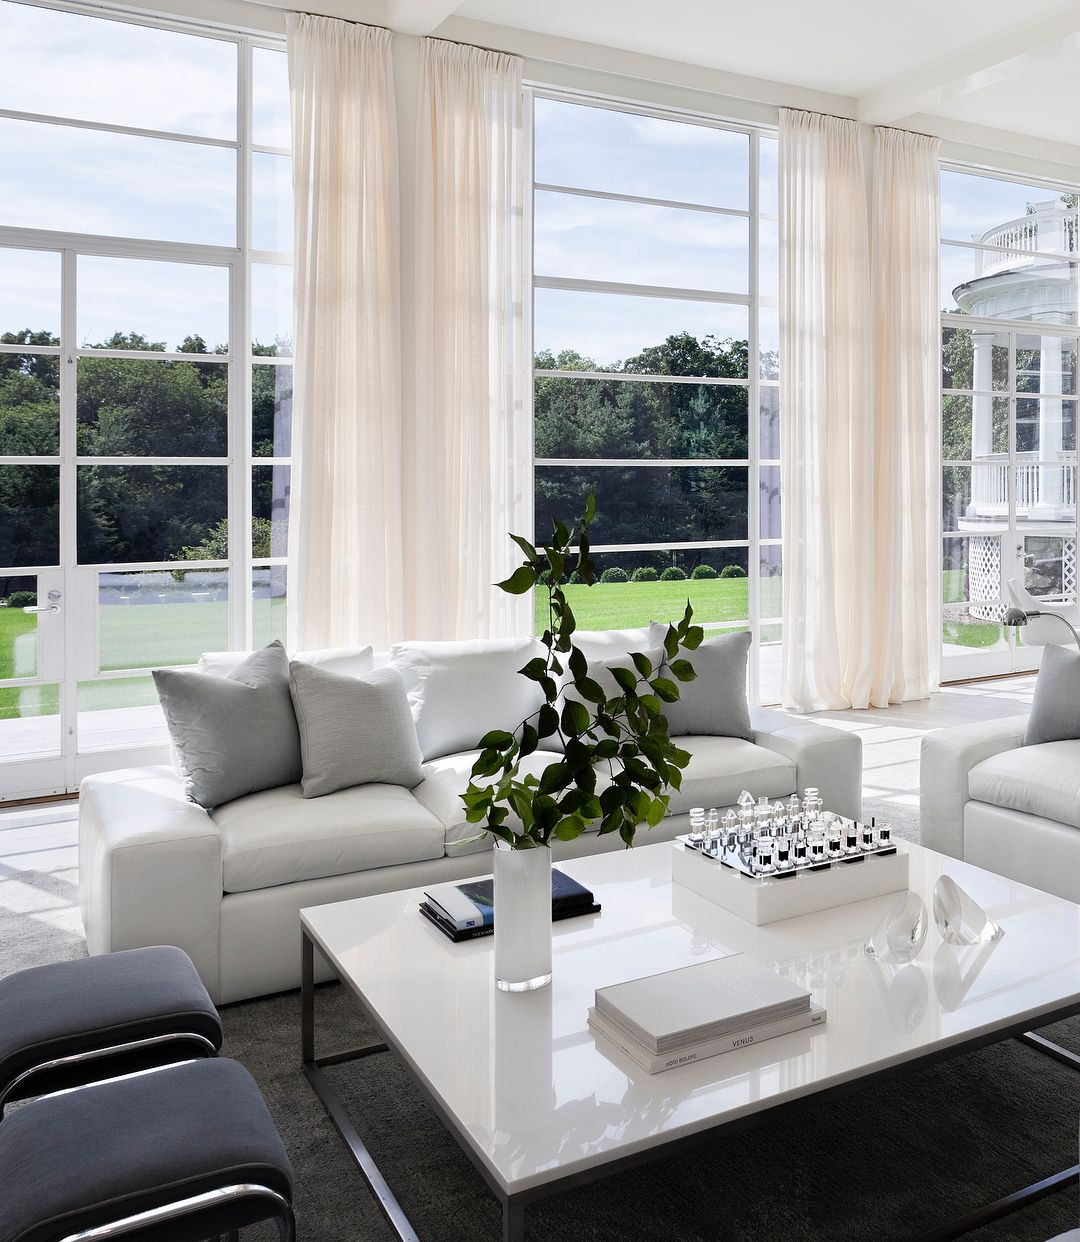 Family Room Additions: A Family Room Addition To A